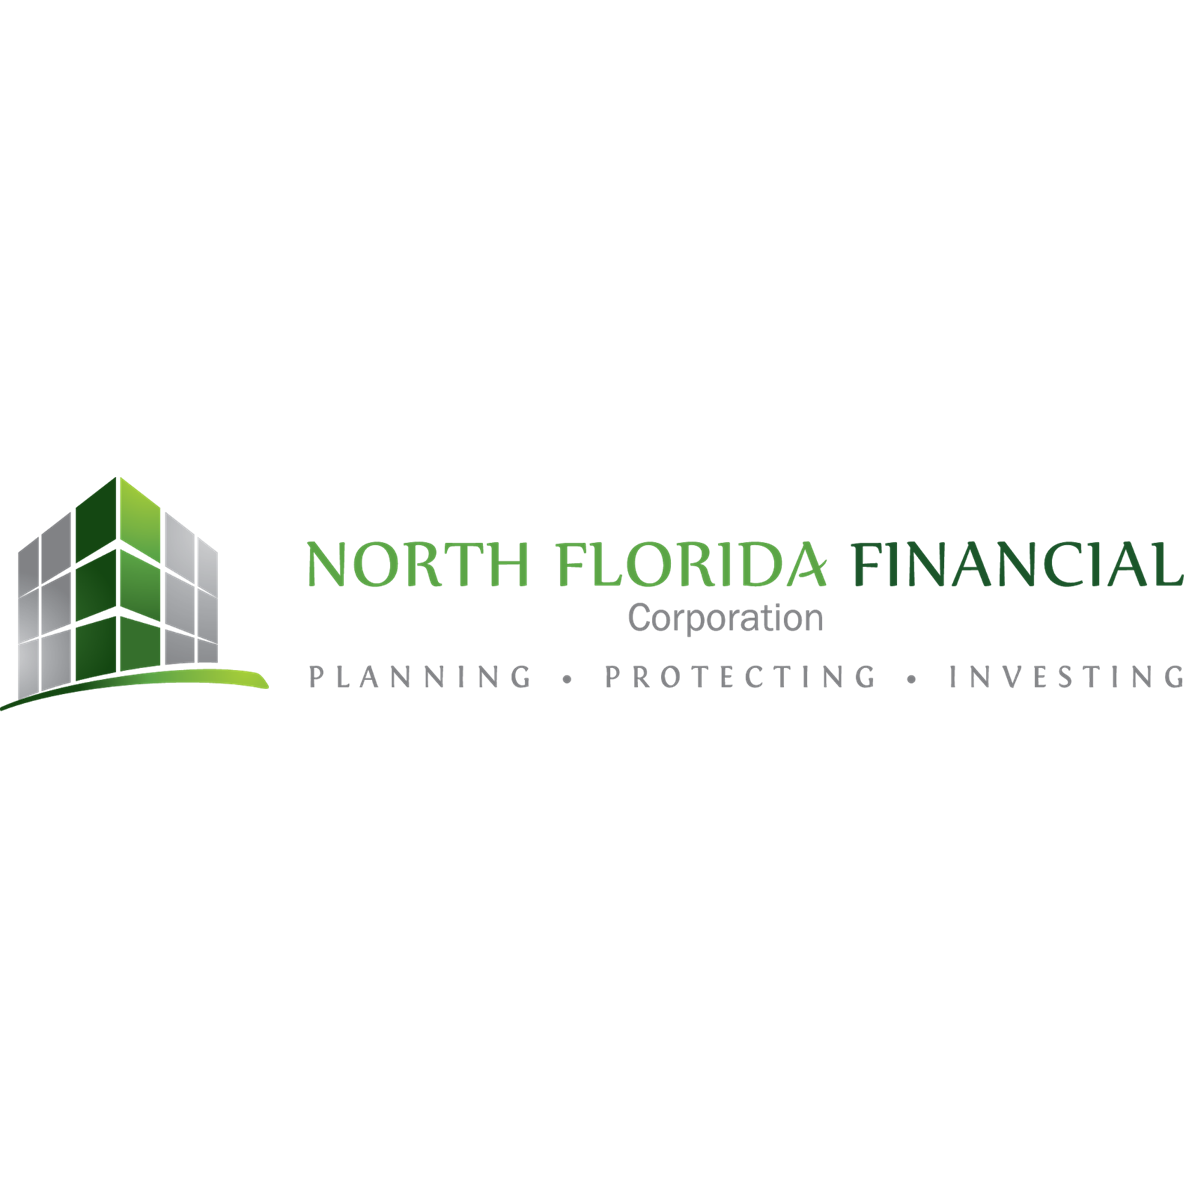 North Florida Financial Corporation